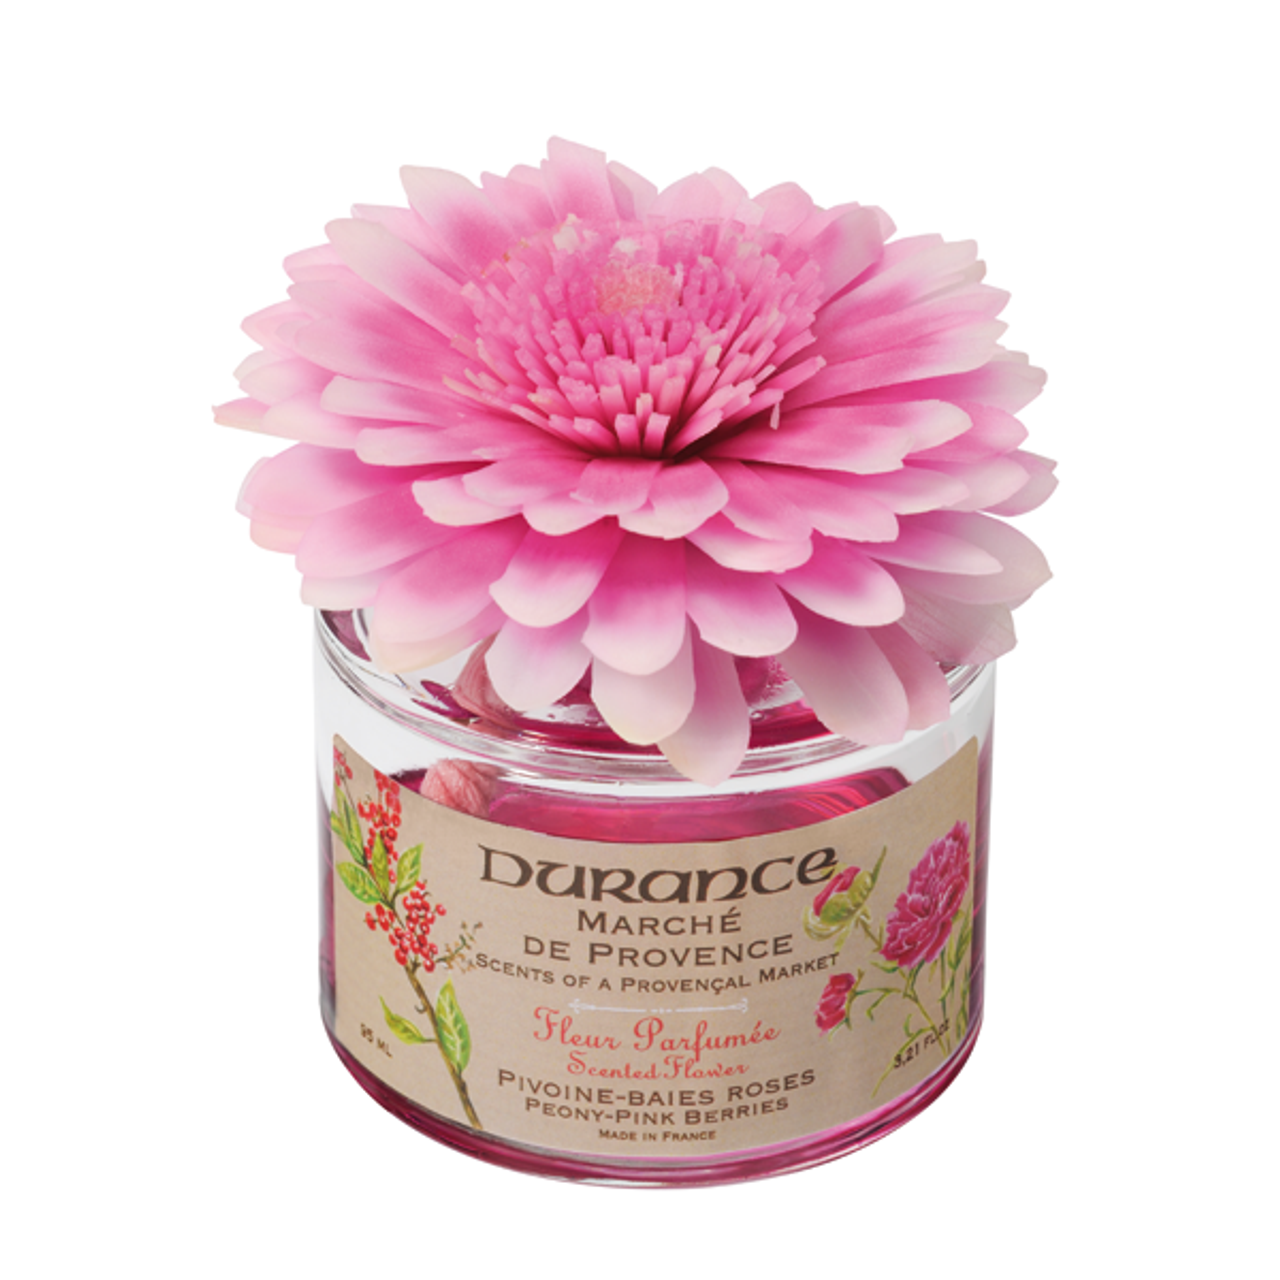 Durance peony pink berries scented flower 338 floz peony pink berries scented flower 338 floz mightylinksfo